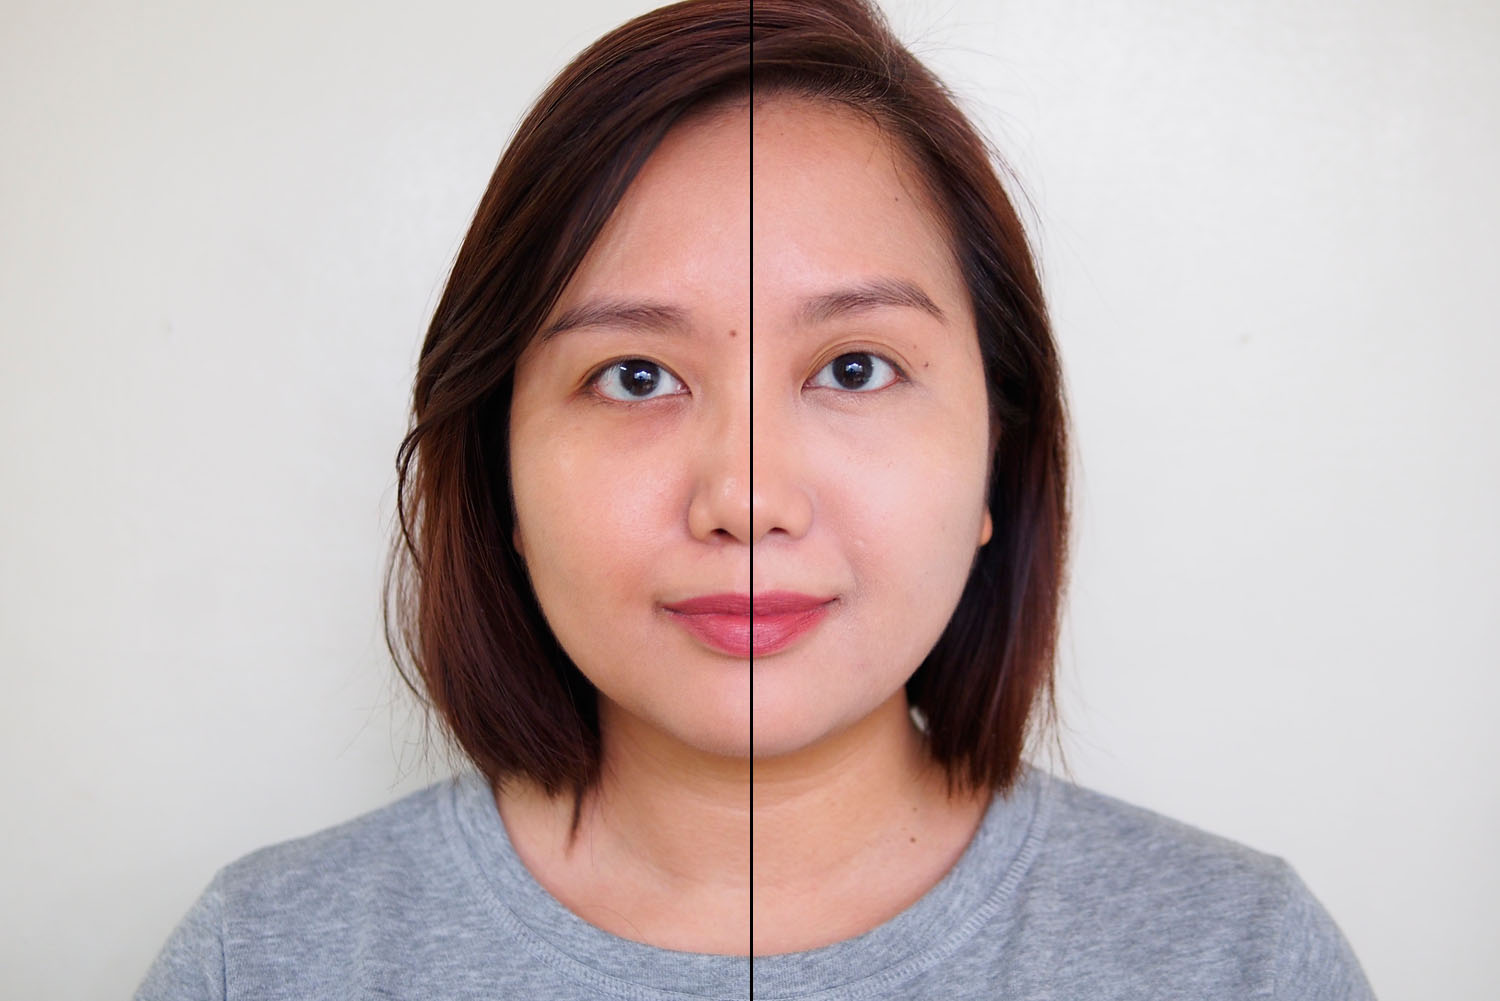 Left: foundation only, Right: blended corrector